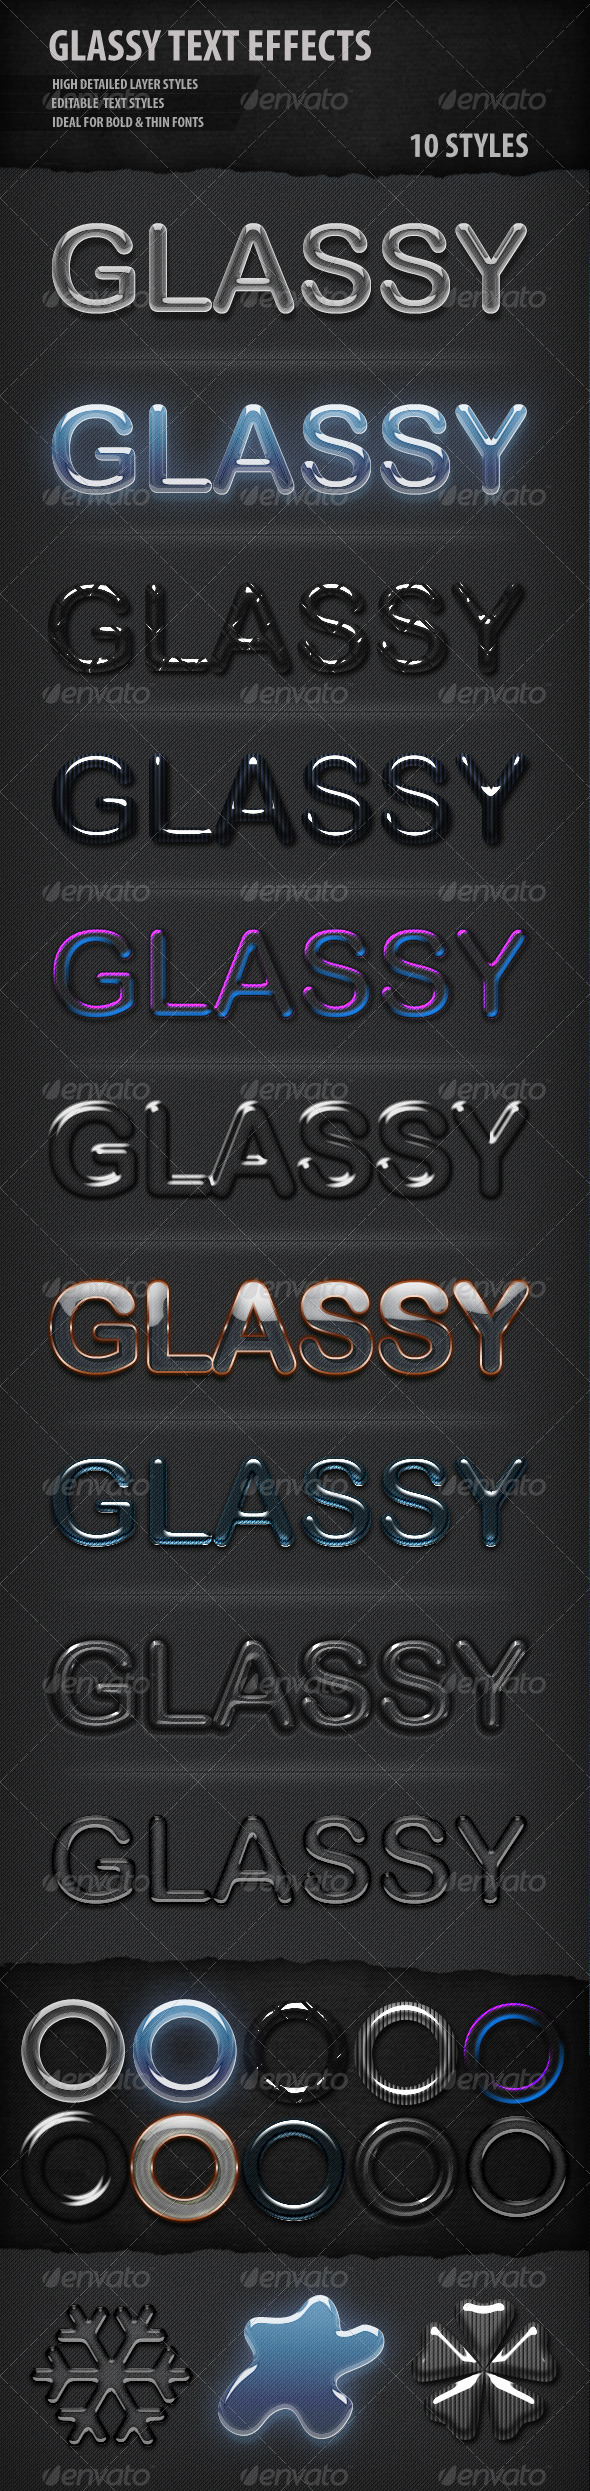 Glassy Text Styles - Text Effects Actions